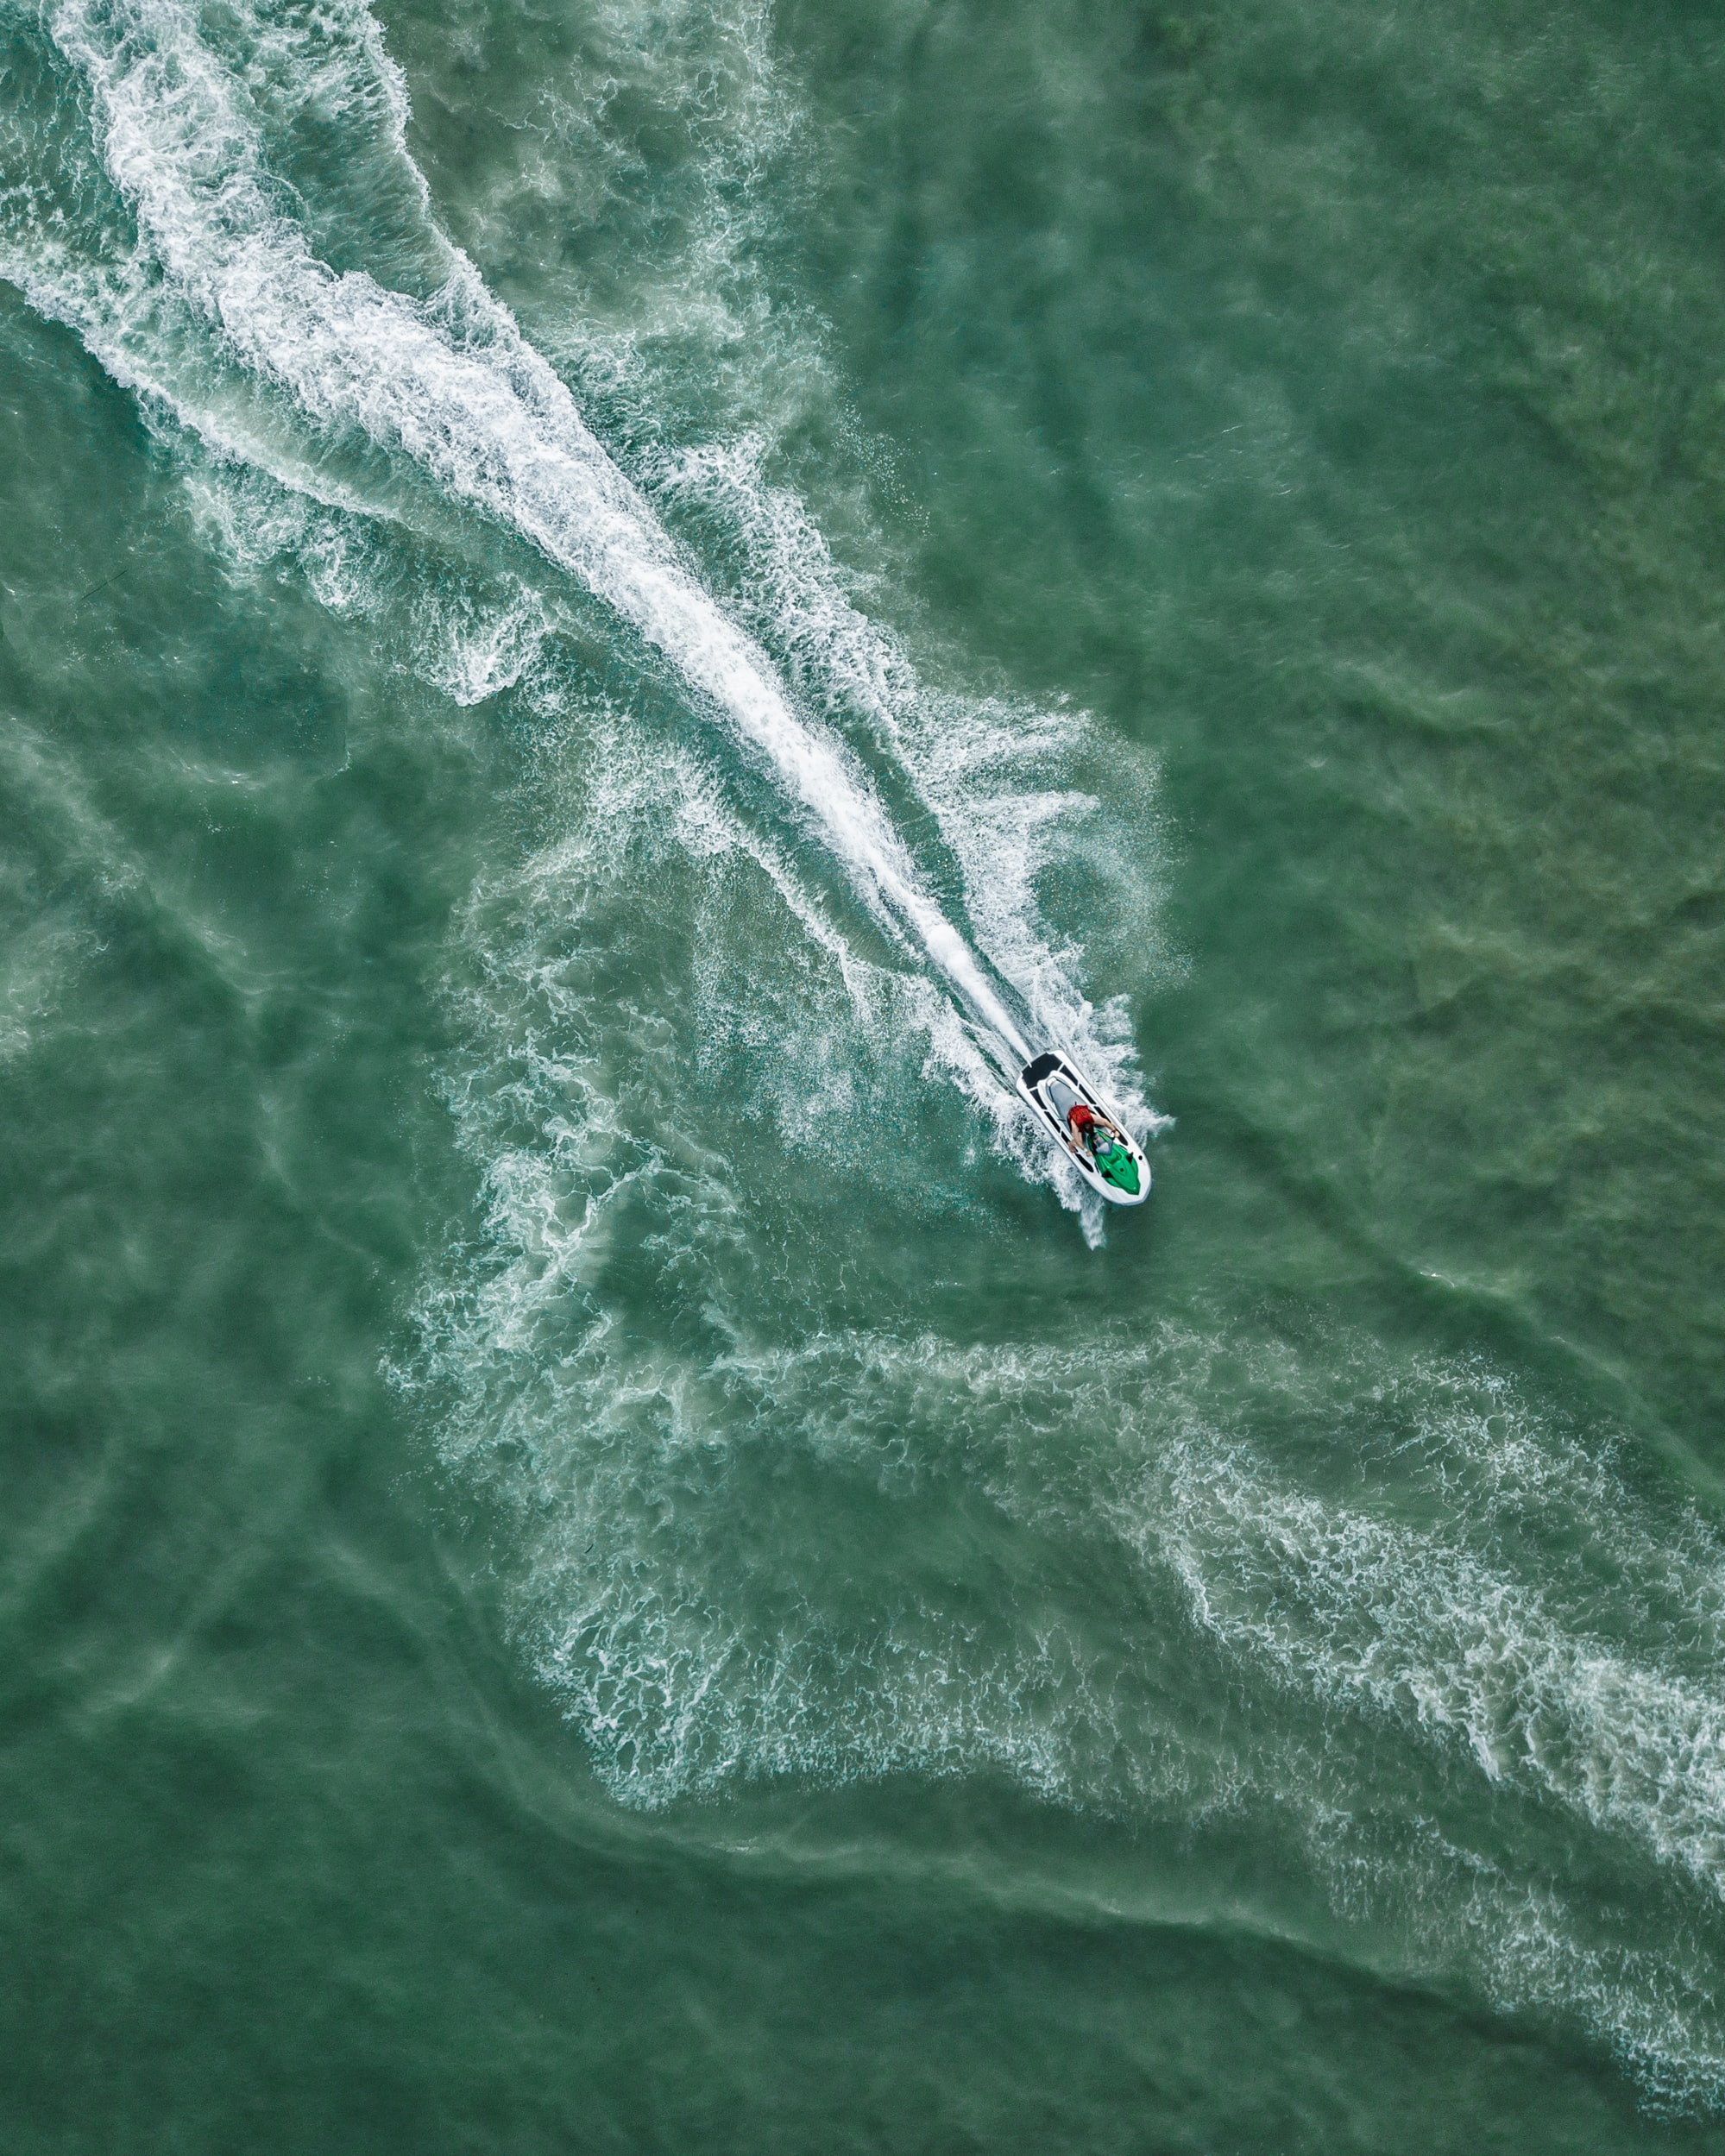 bird's eye view of personal watercraft on body of water